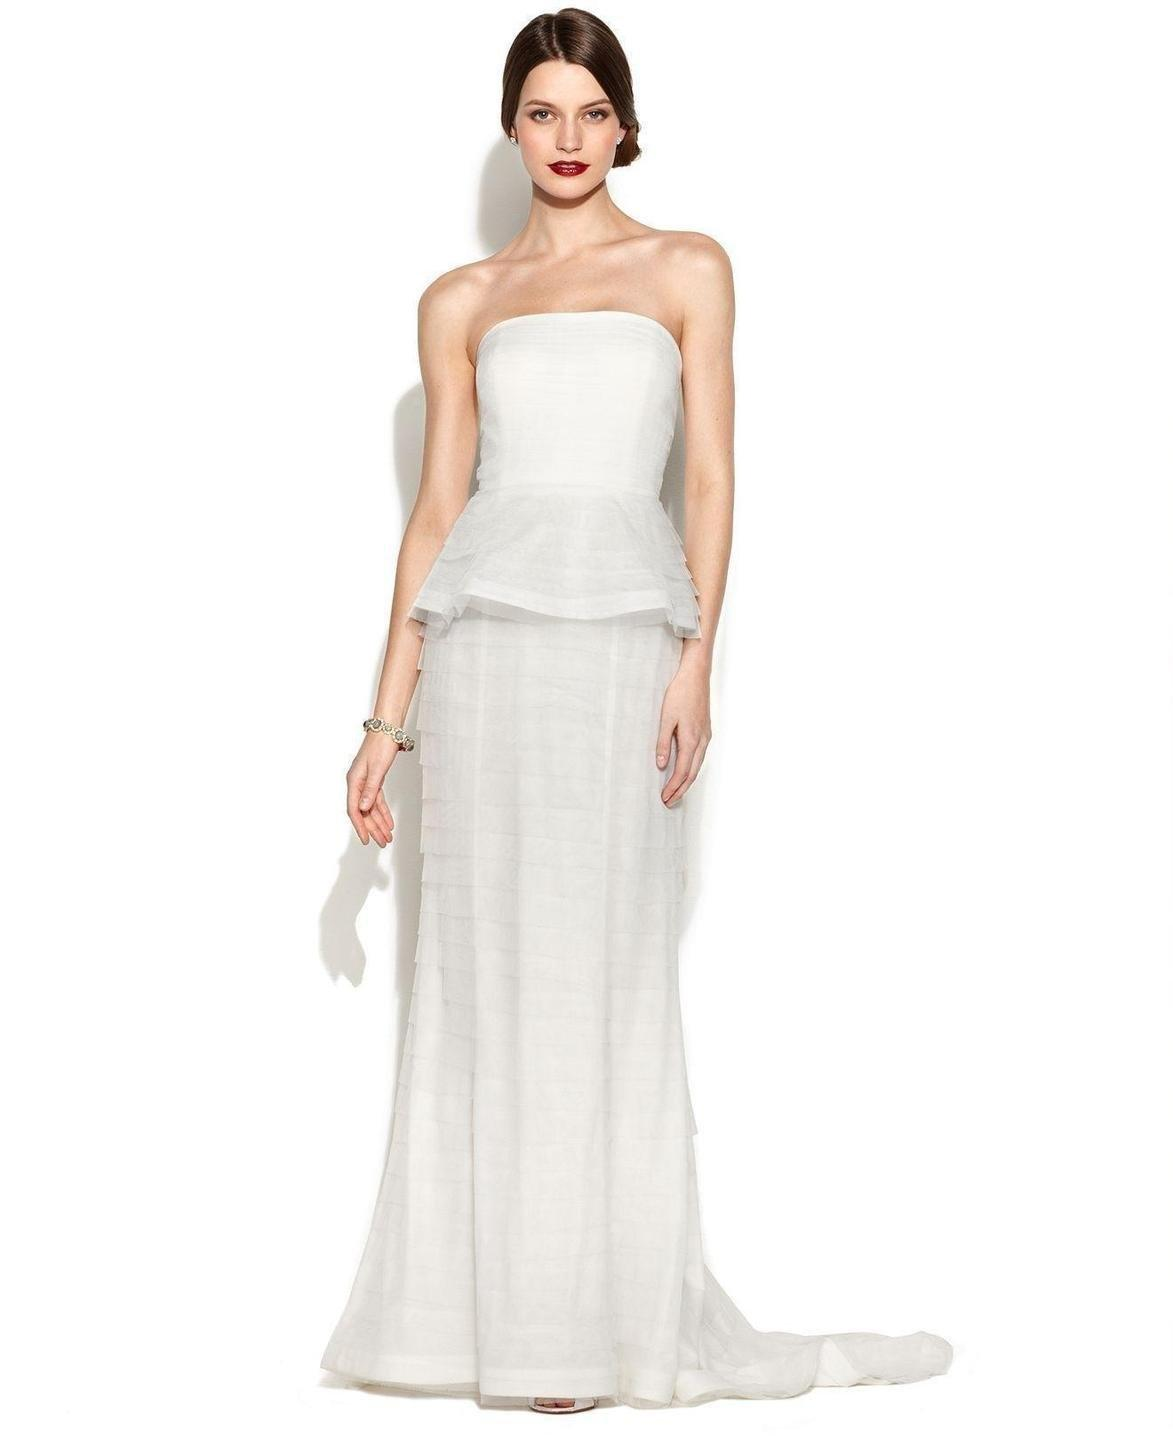 Adrianna Papell Ivory Strapless Tiered Peplum Gown ...